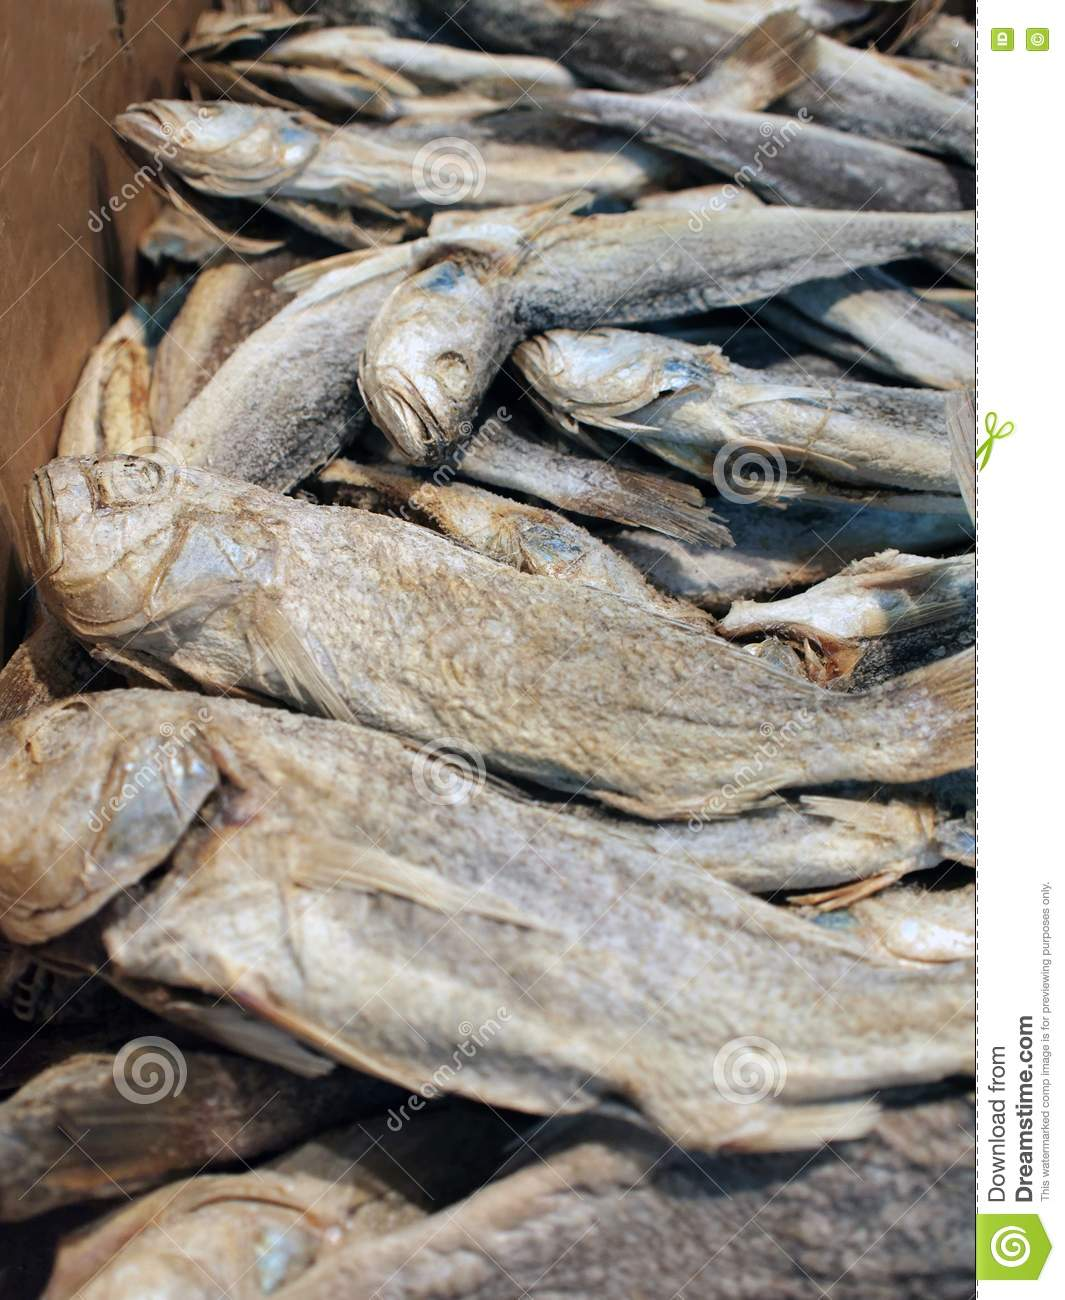 Sun dried and salted fish stock photography image 15060212 for Chinese salted fish